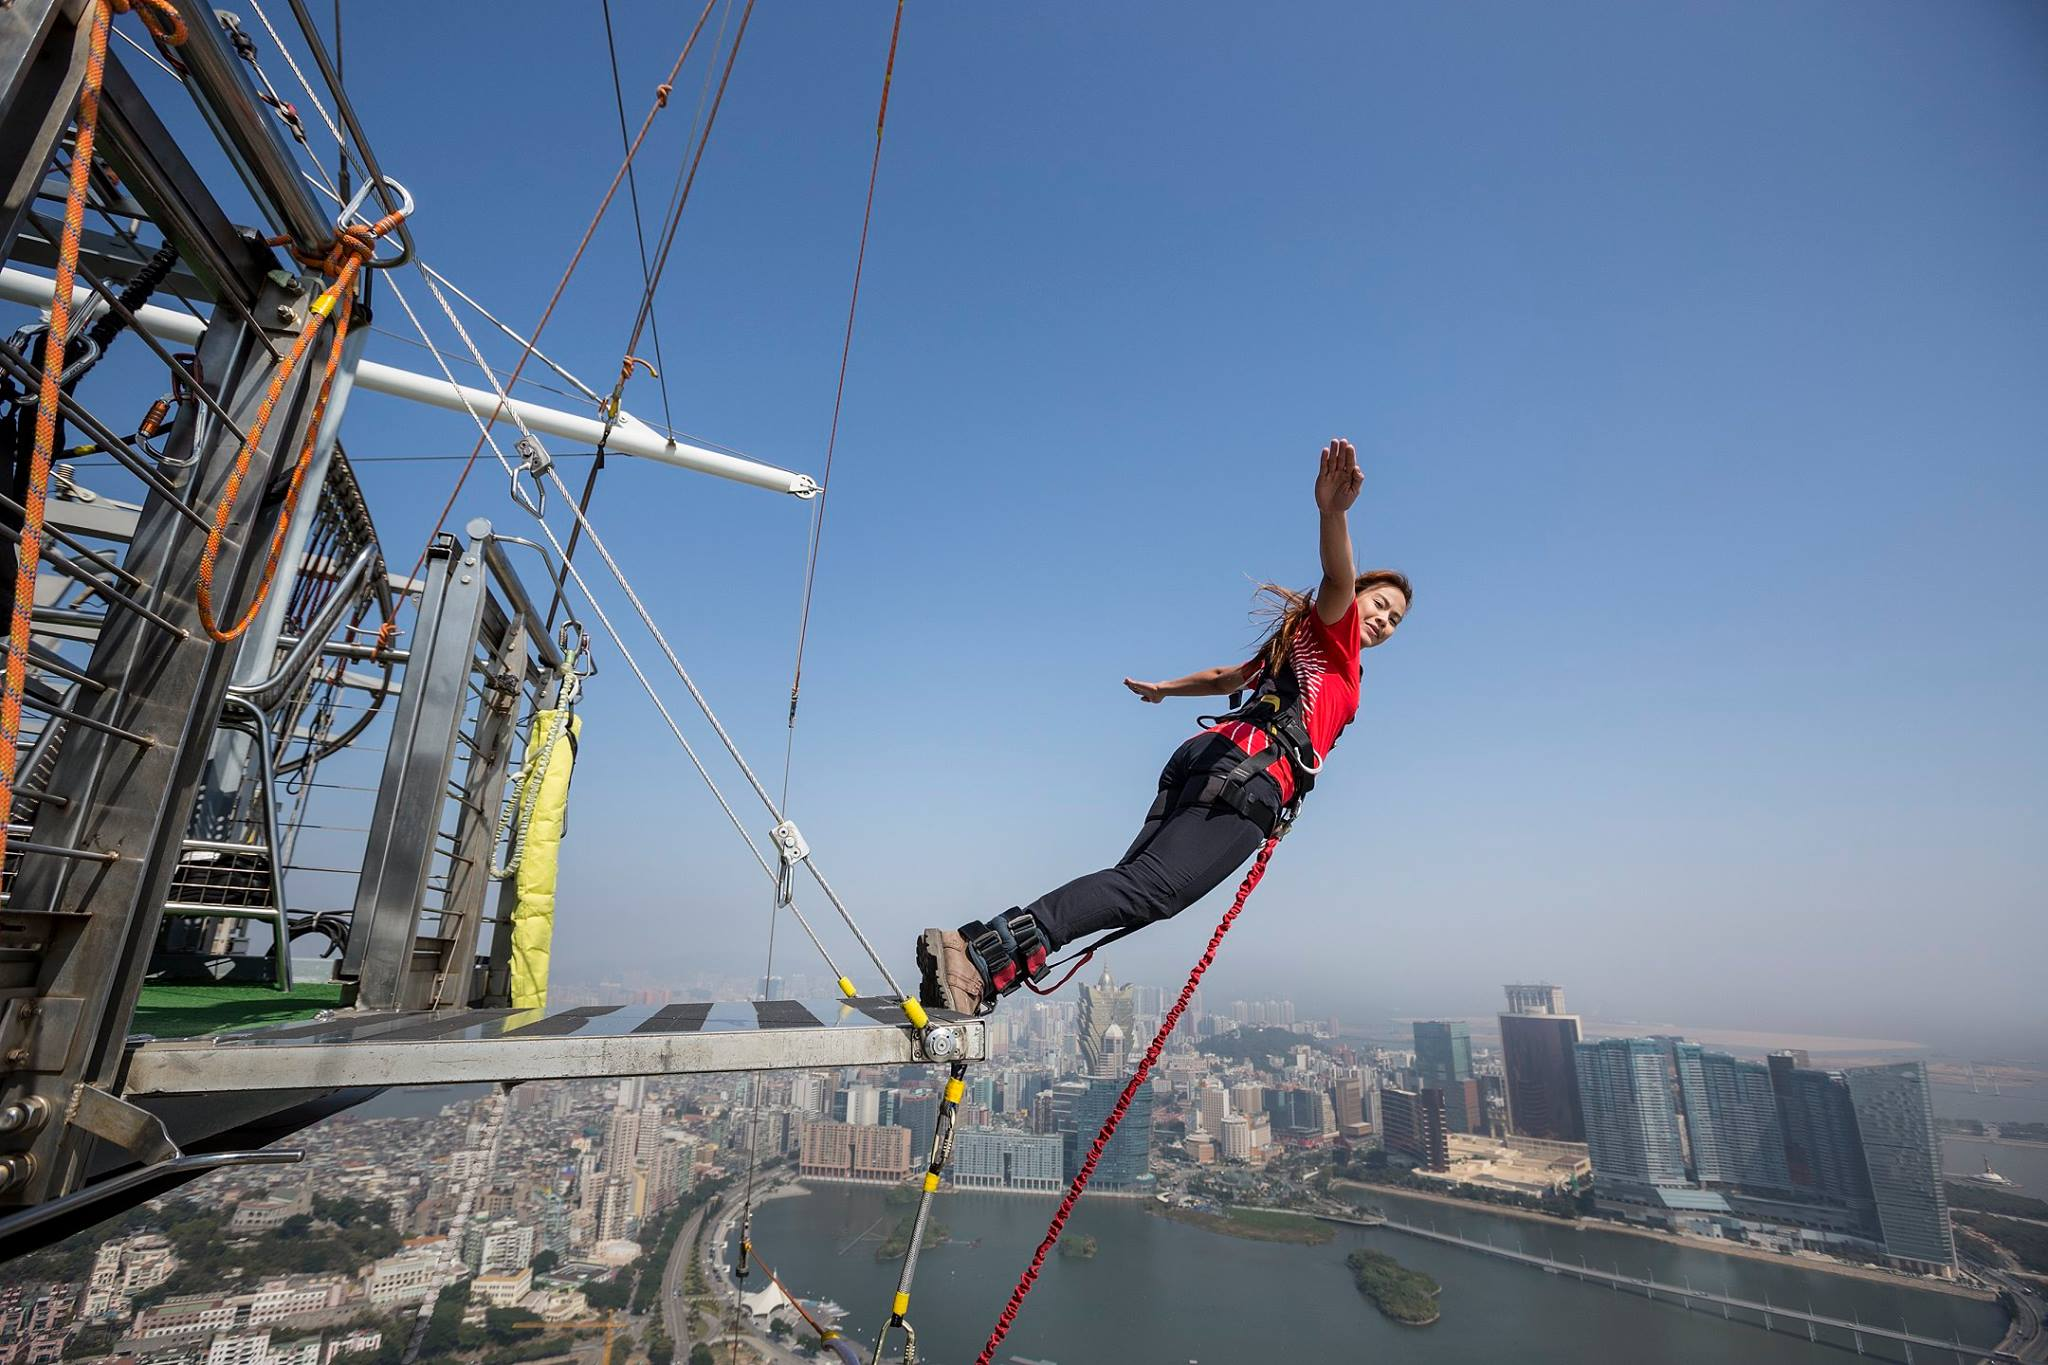 Bungee jumping off of the Macau Tower in China